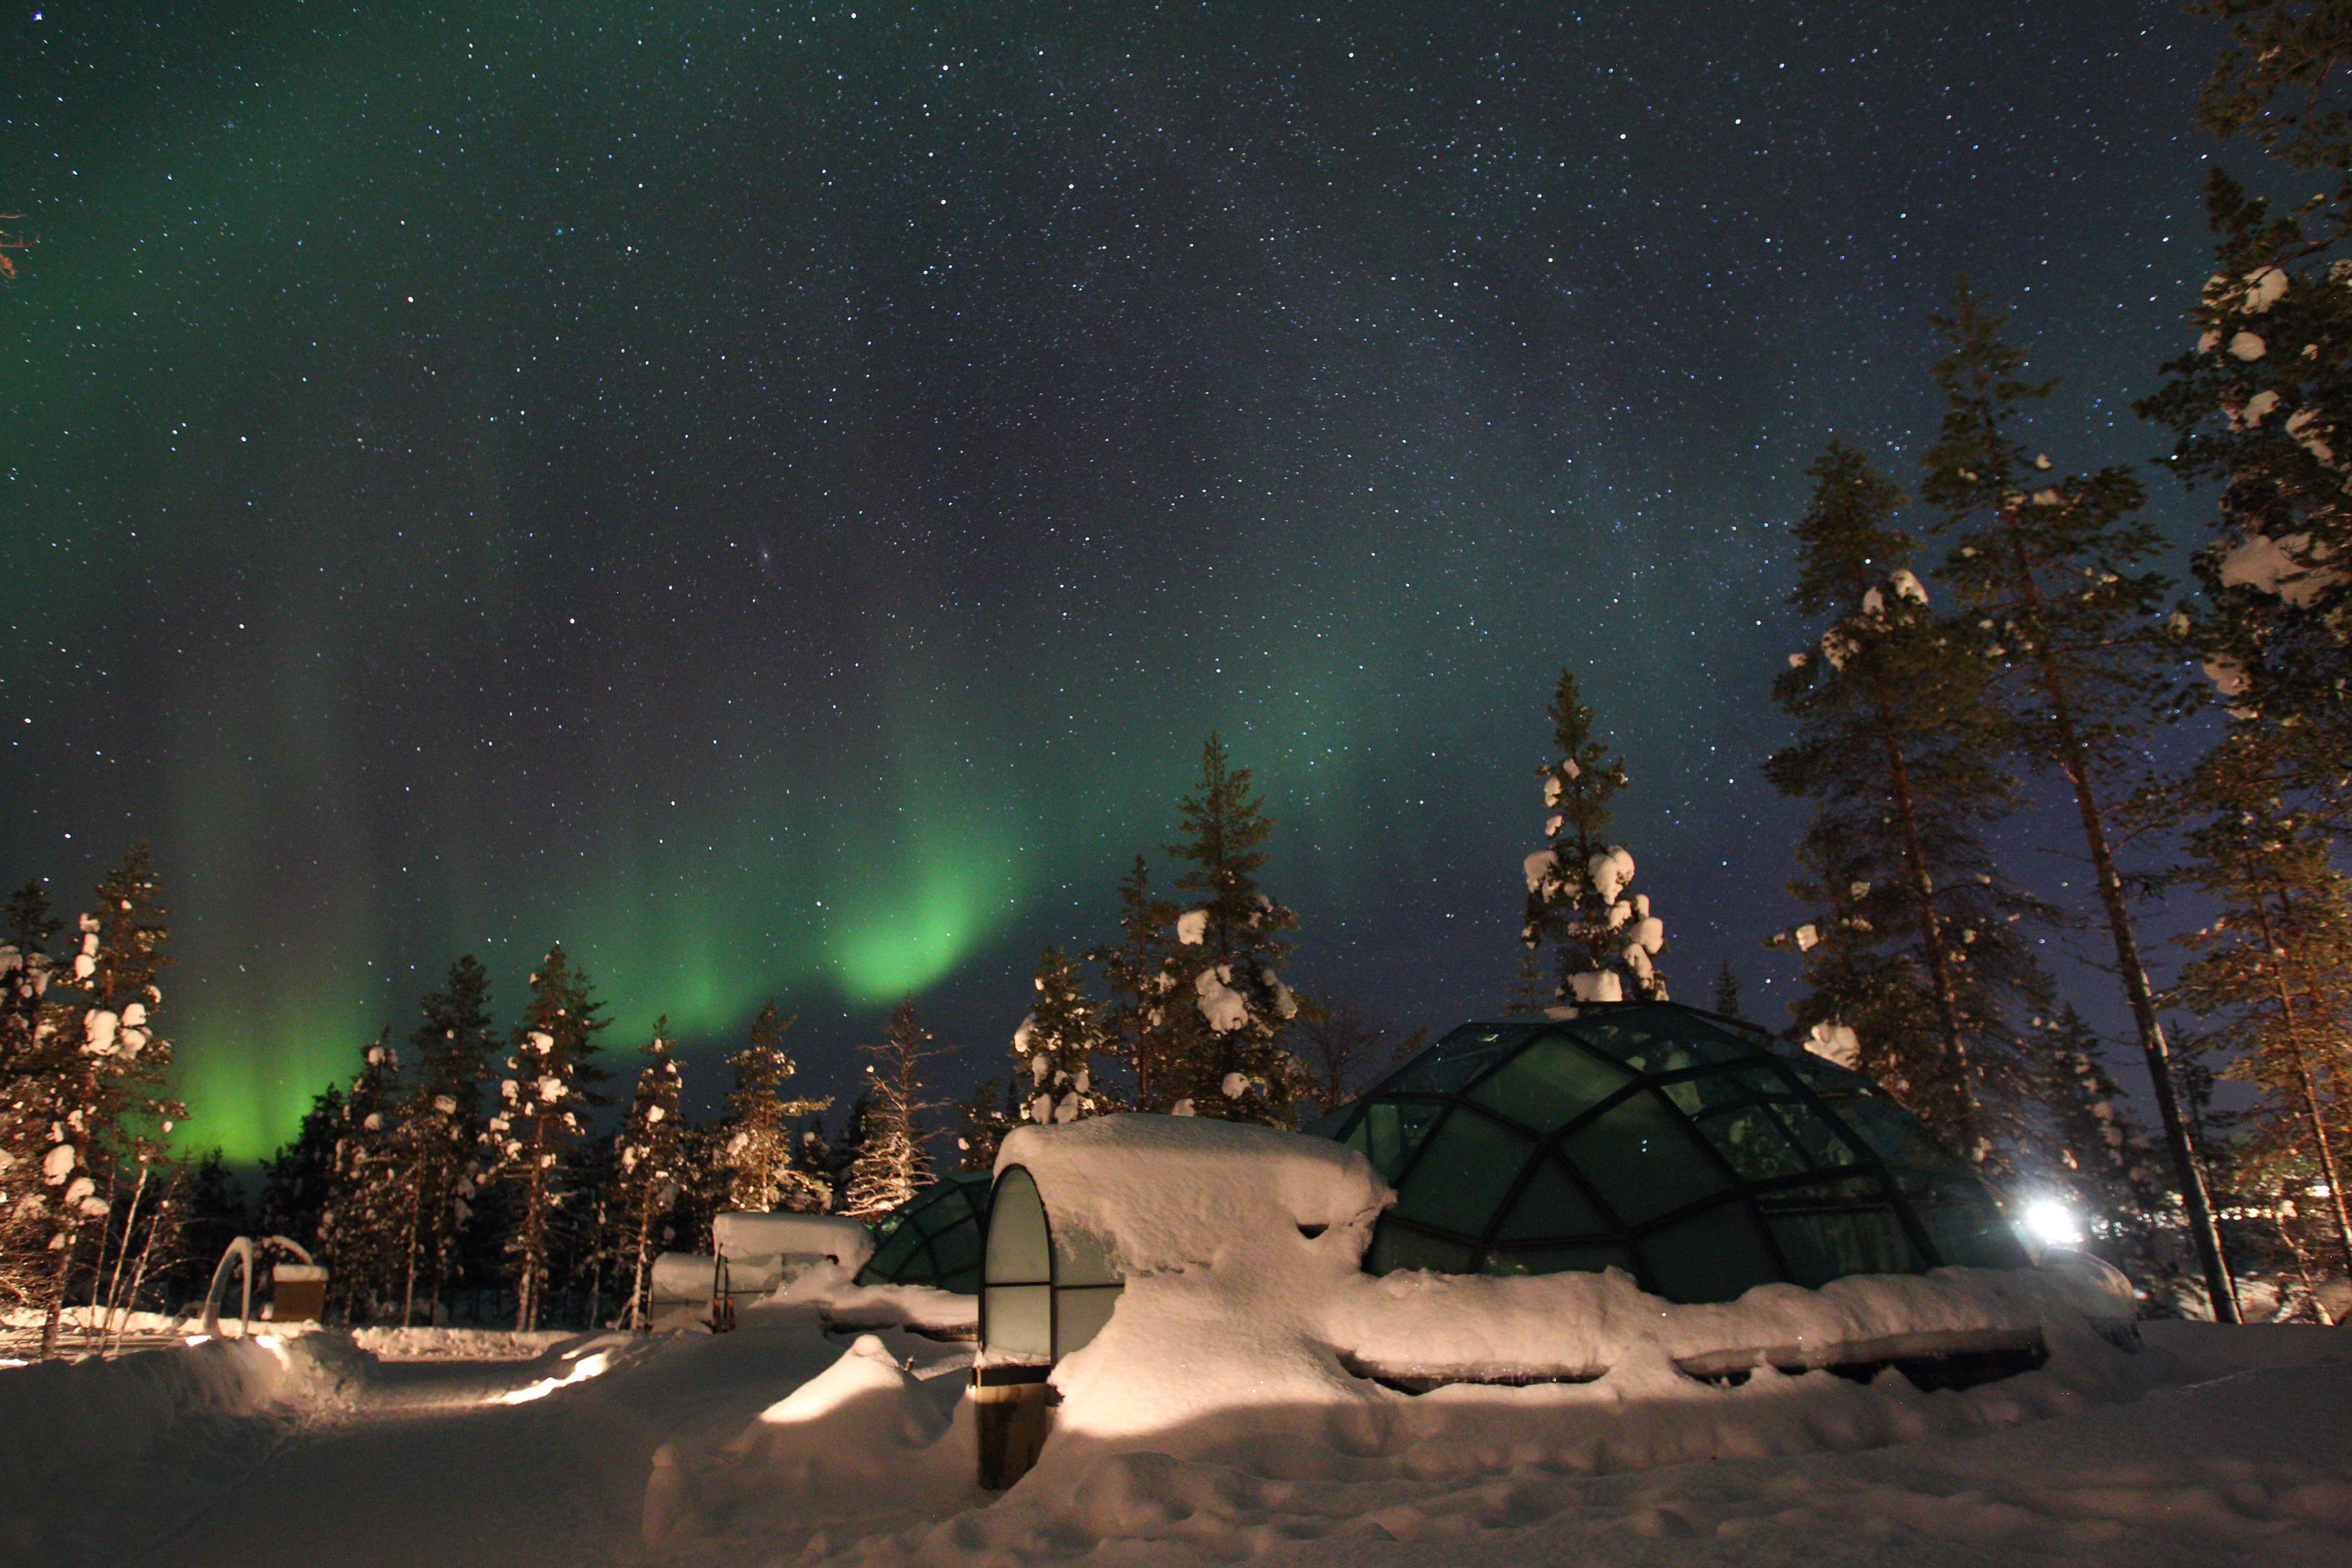 Chinese tourists' enthusiasm for winter sports boosts Finnish tourism growth